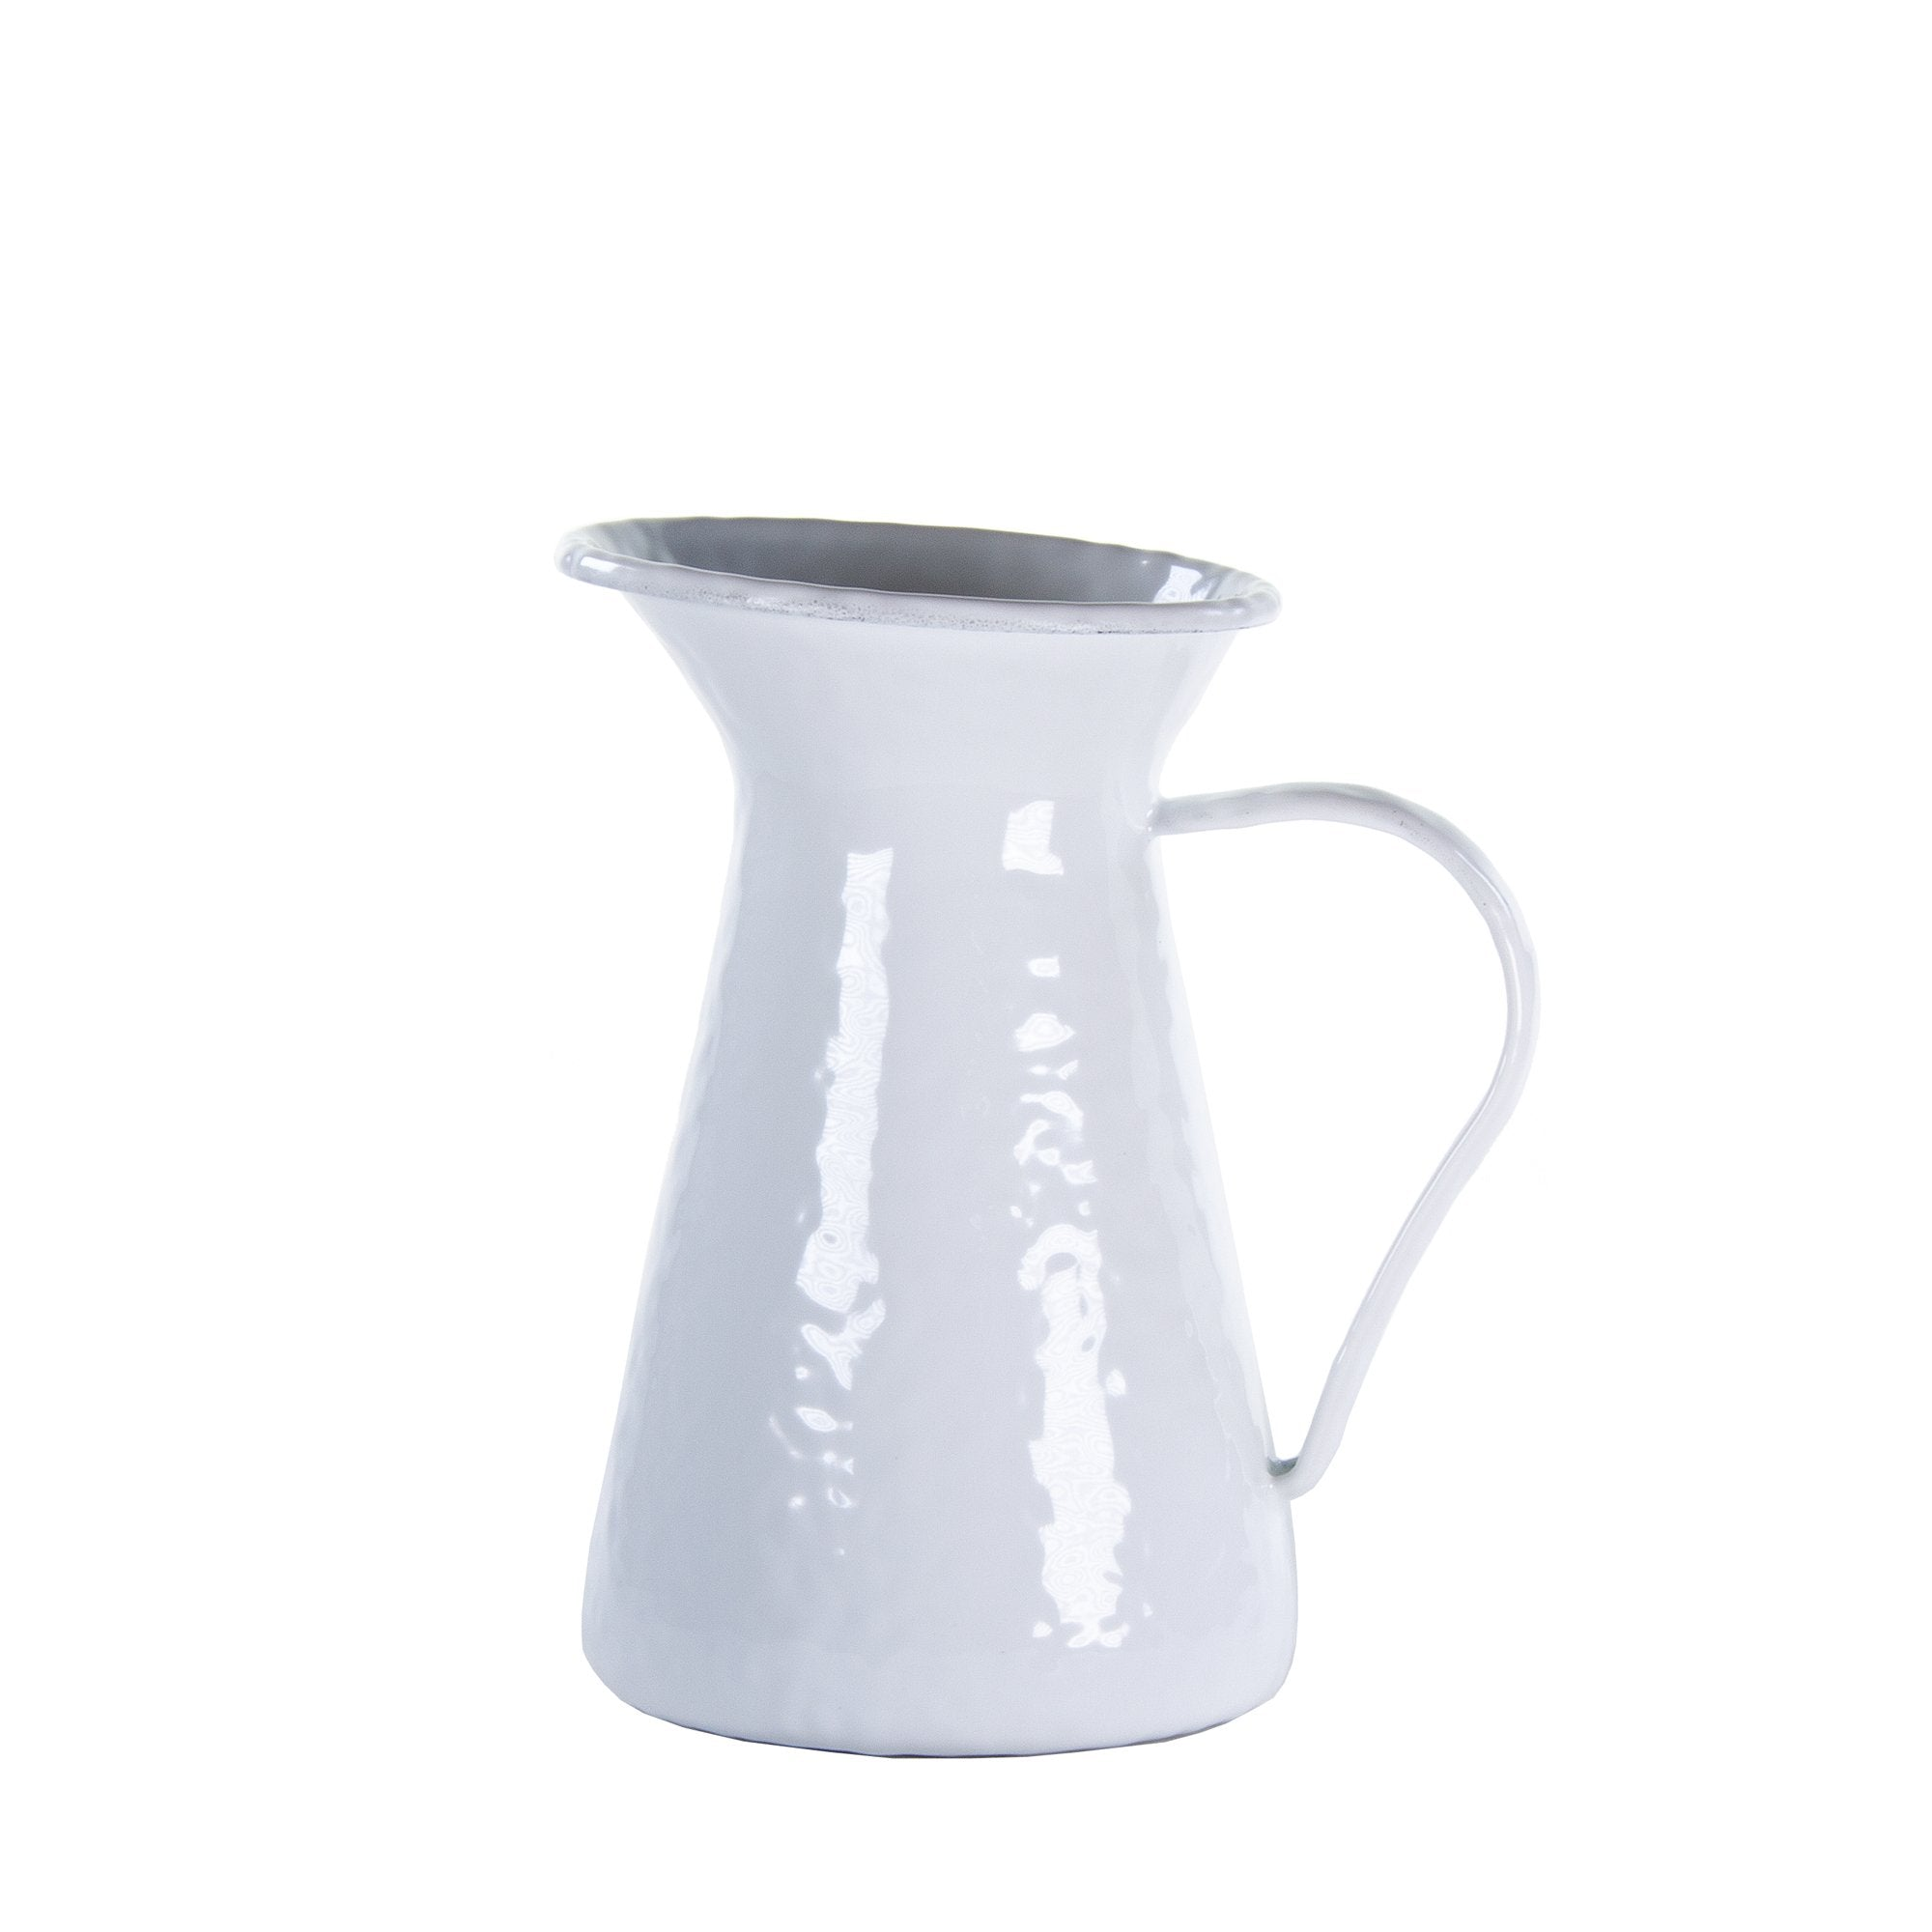 WW33 - Solid White - Enamelware- Small Pitcher by Golden Rabbit